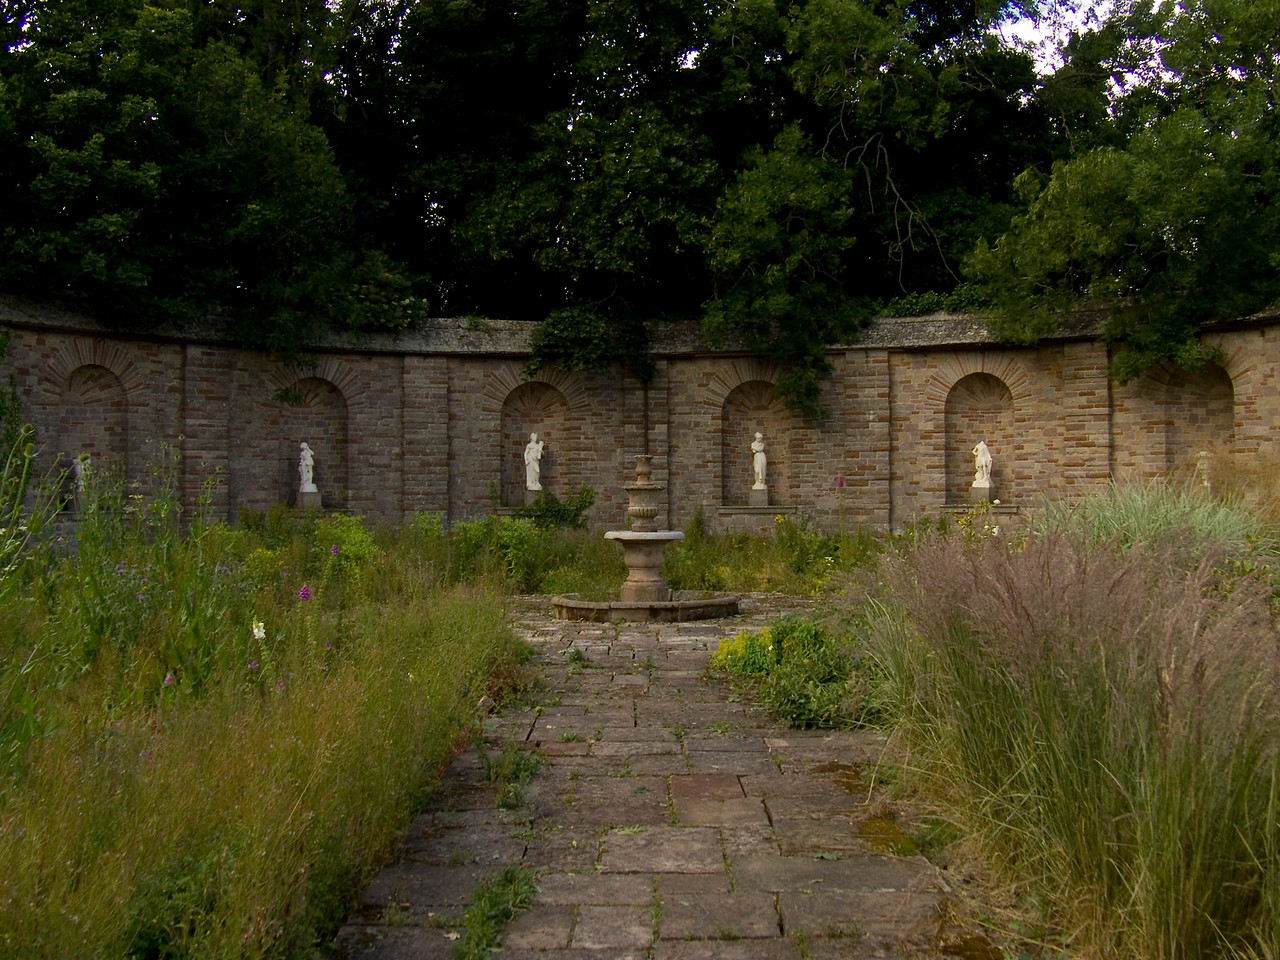 Part of the walled garden that was built by CJ Leyland when he resided at Haggerston House. He used the garden to grow his own plants, and spent a lot of time here cultivating them